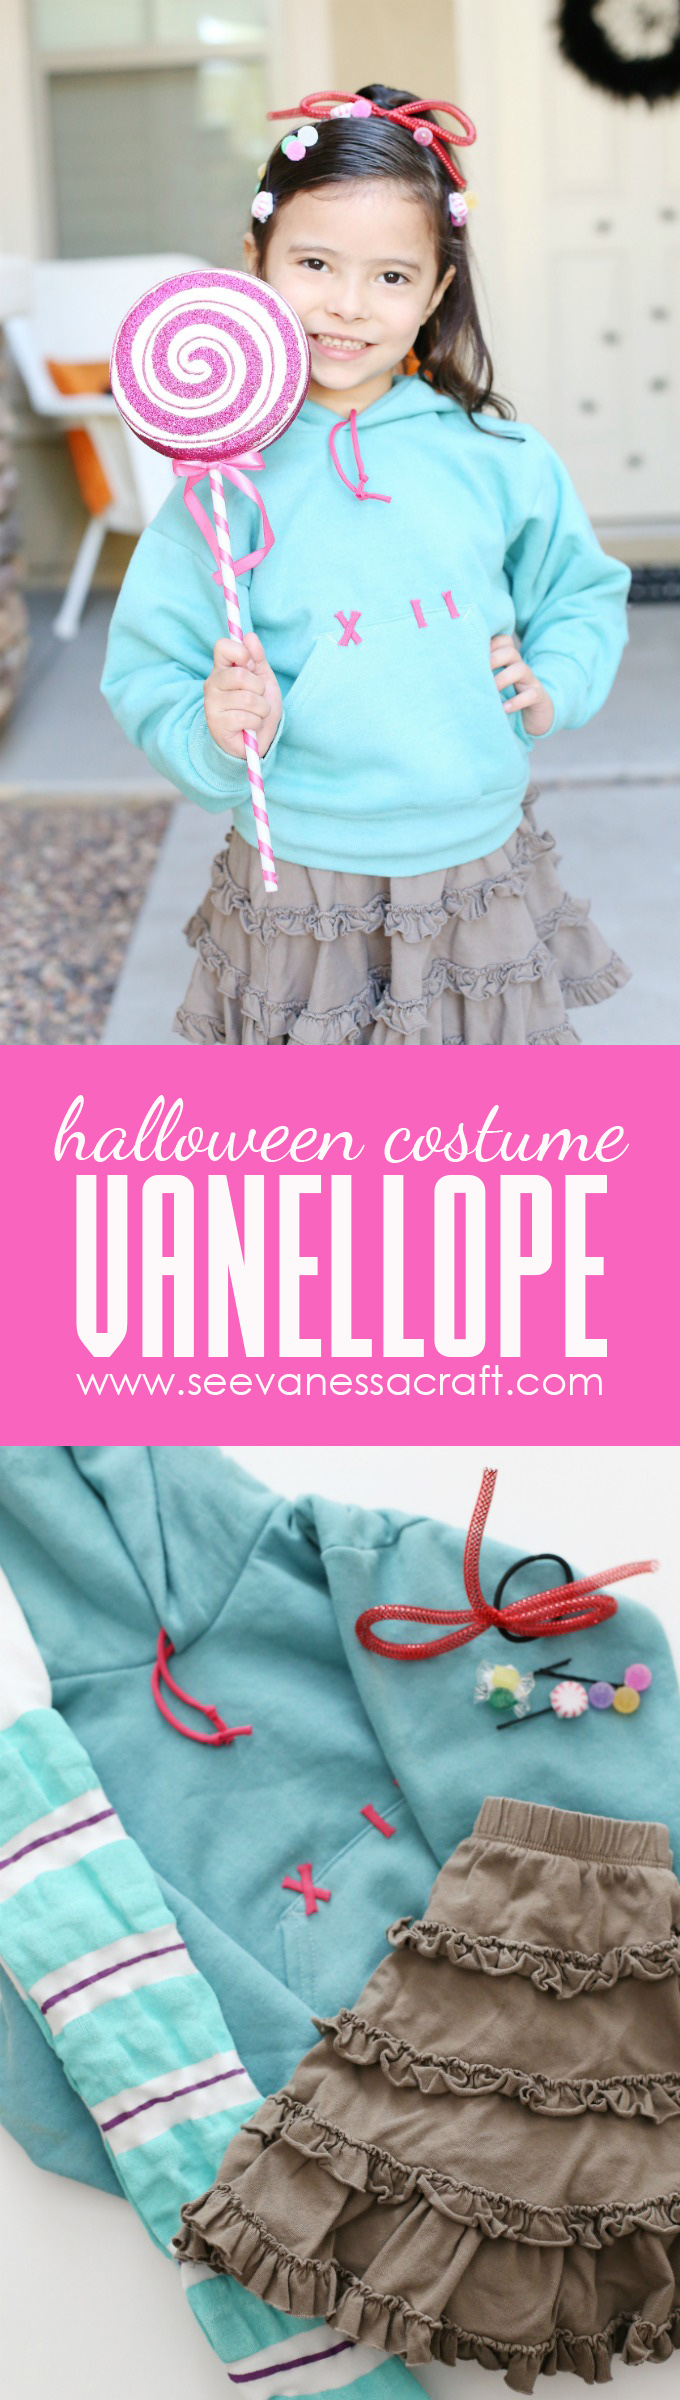 DIY Vanellope Halloween Costume from Disney Wreck It Ralph